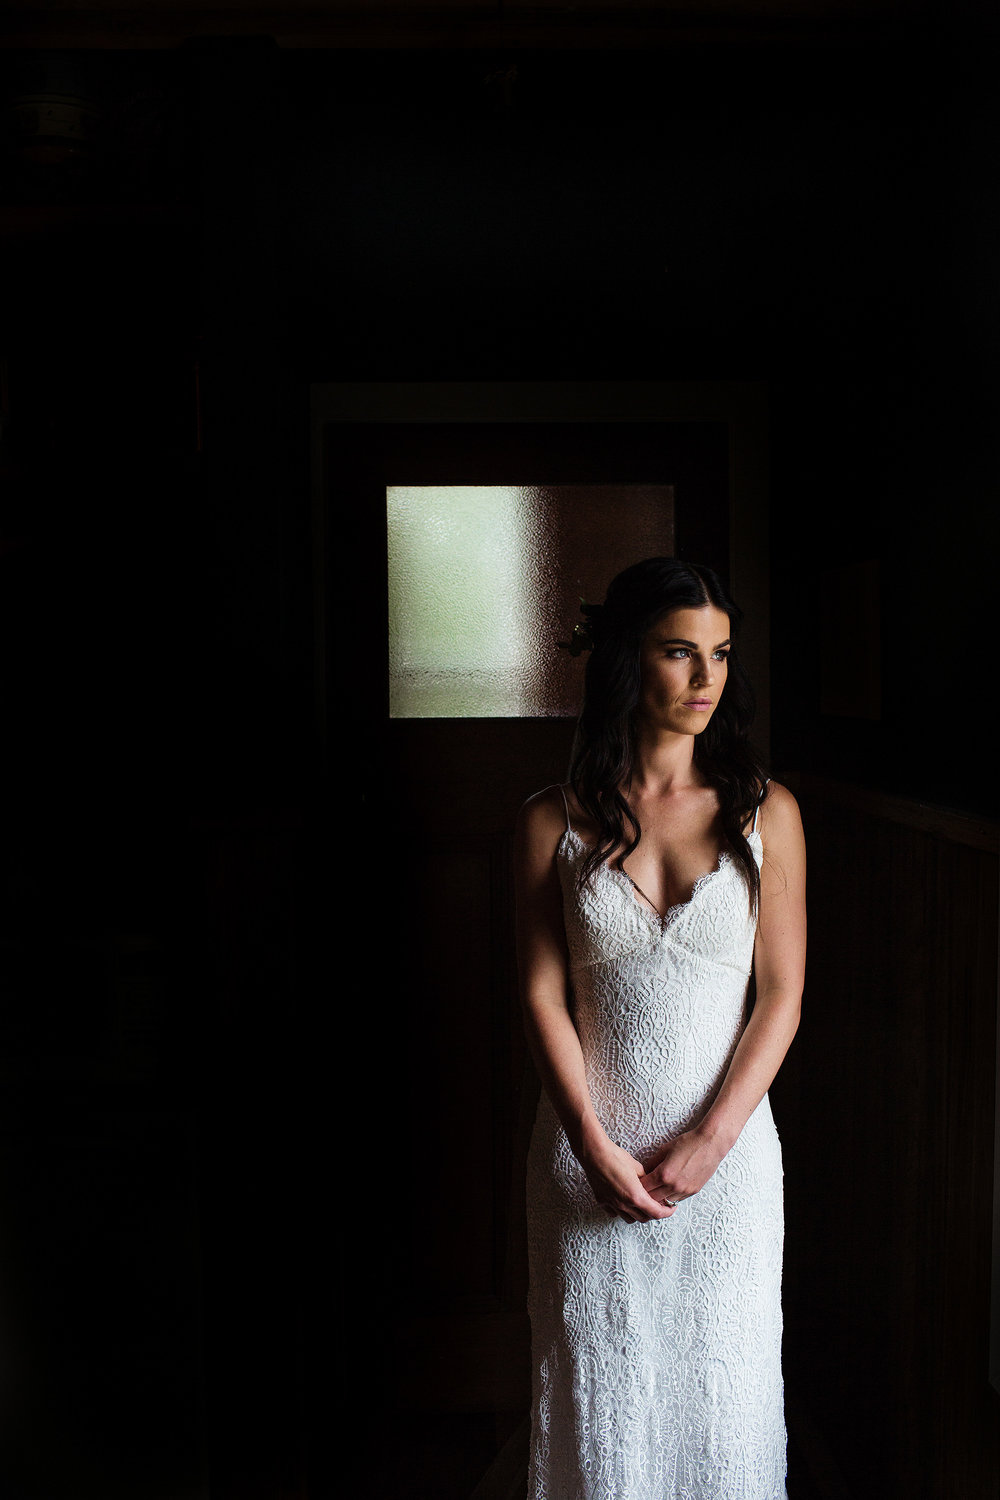 002 natural melbourne wedding photography.jpg